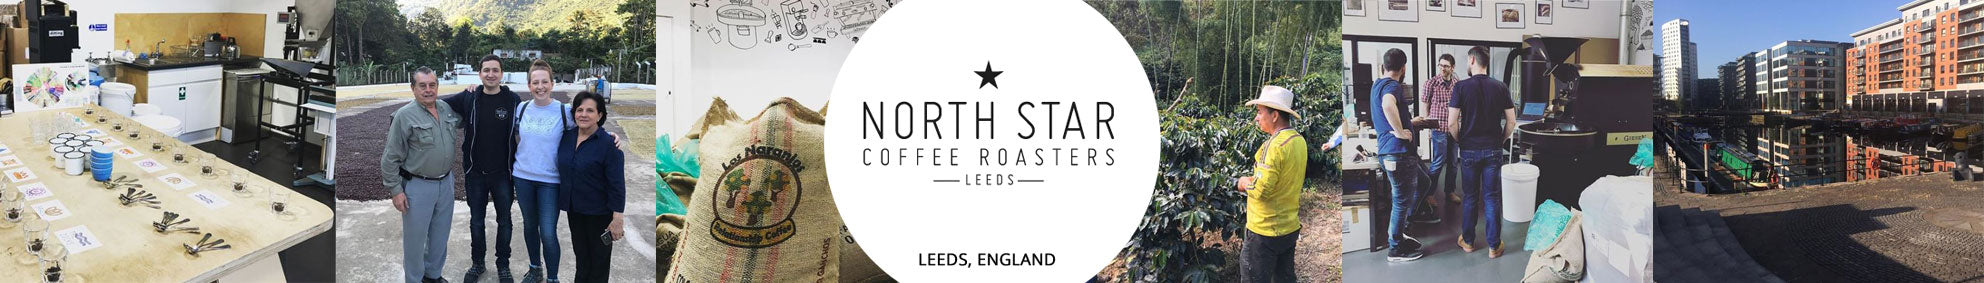 North Star Coffee Roasters